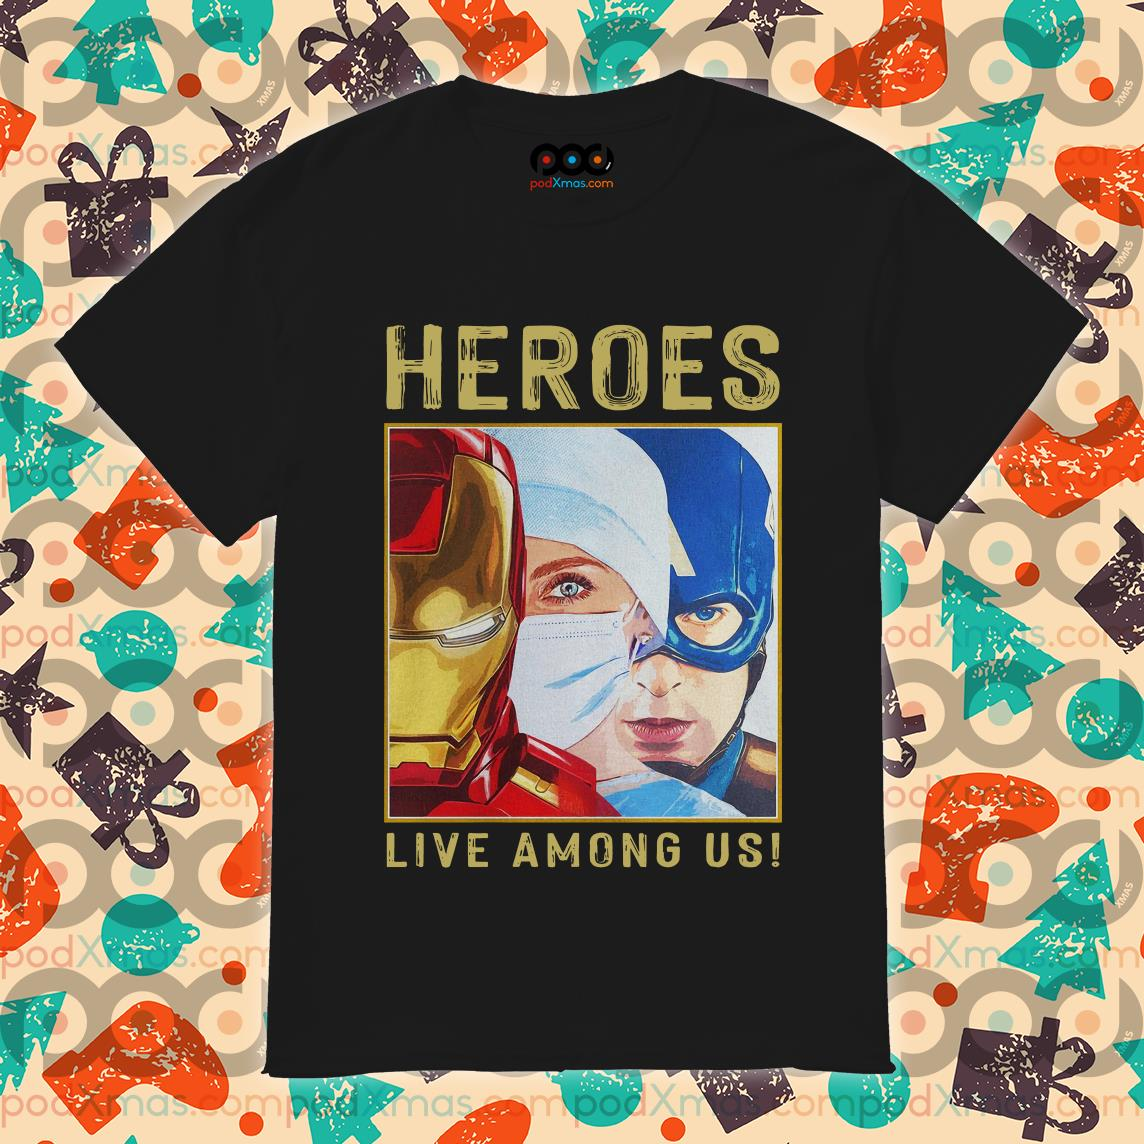 Nurse Heroes Live Among Us T Shirt Podxmas